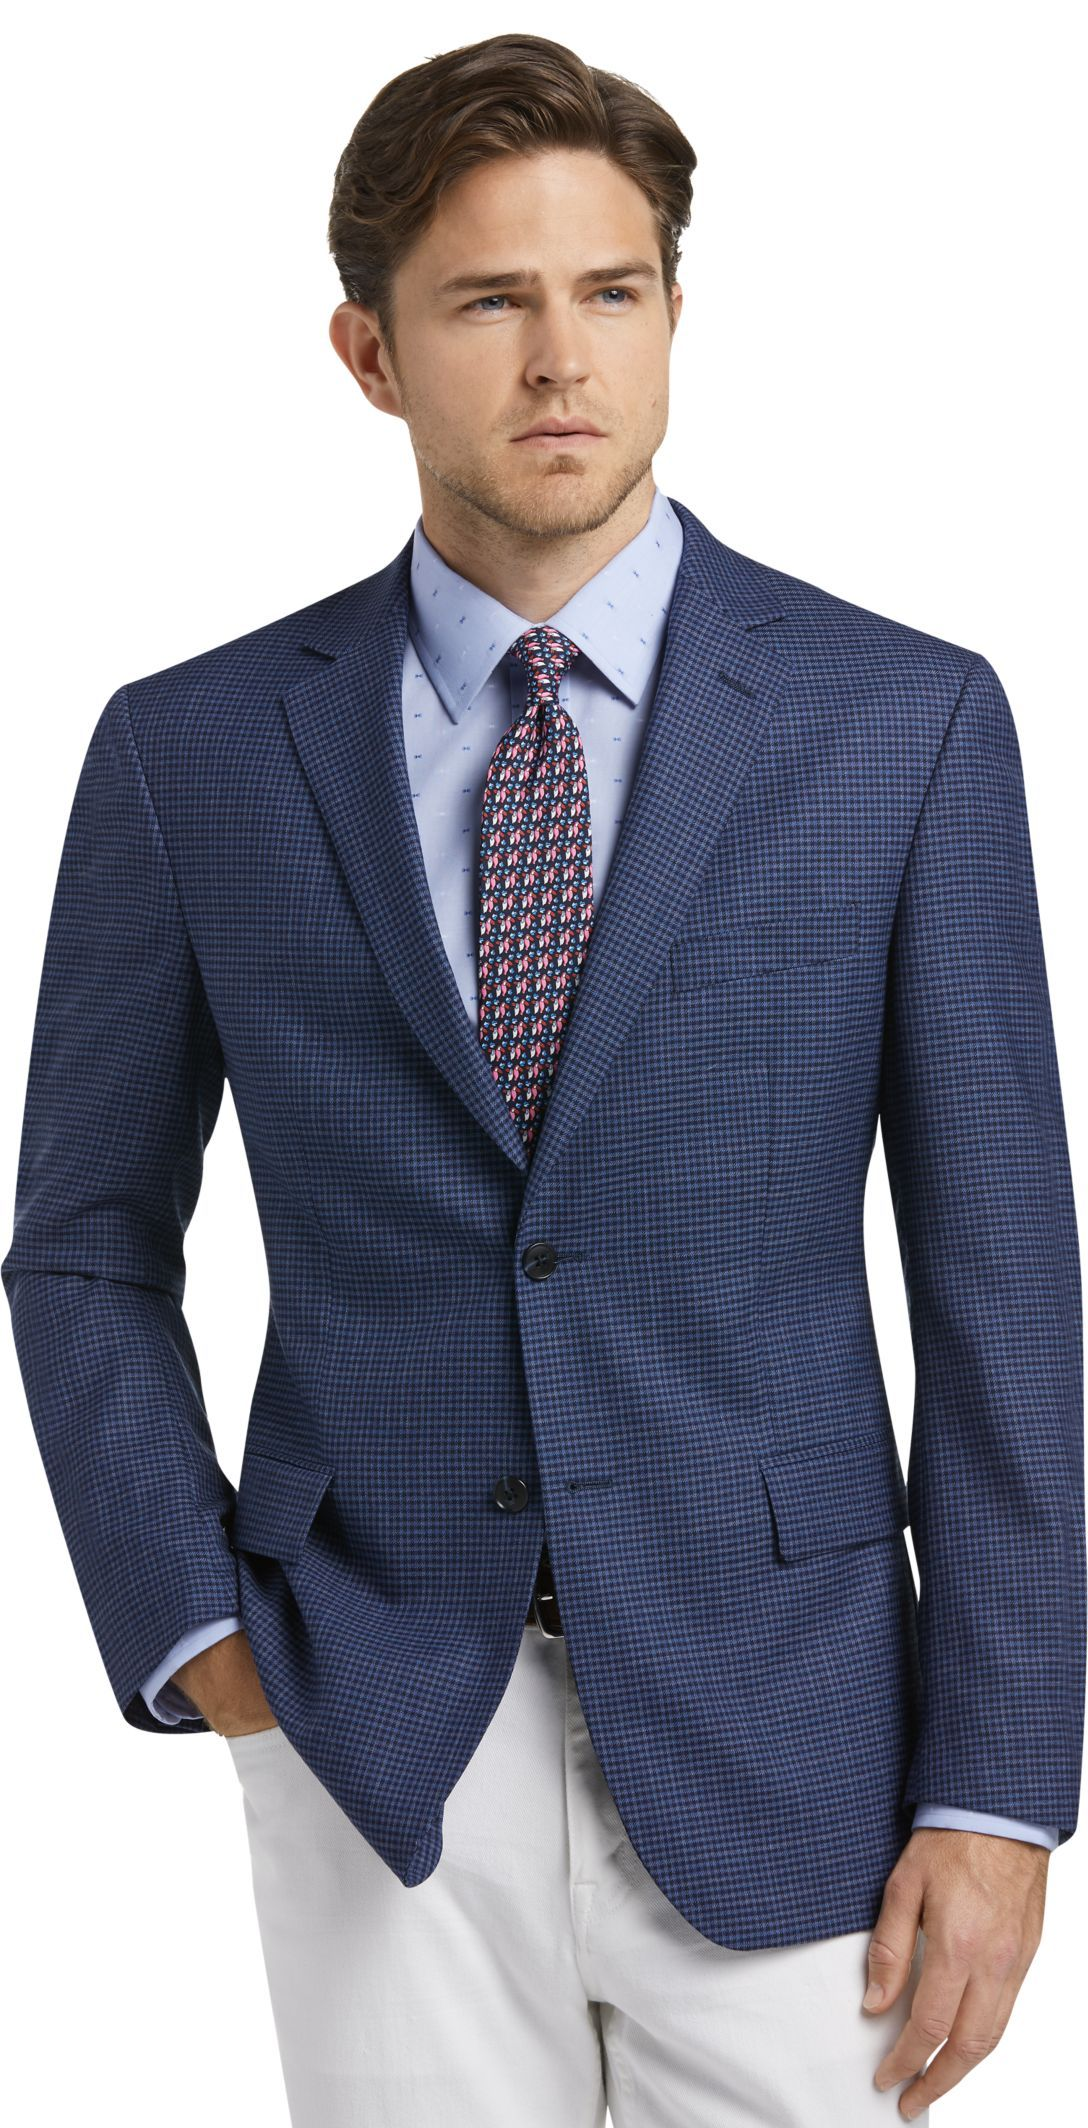 Traveler Collection Tailored Fit Check Sportcoat CLEARANCE